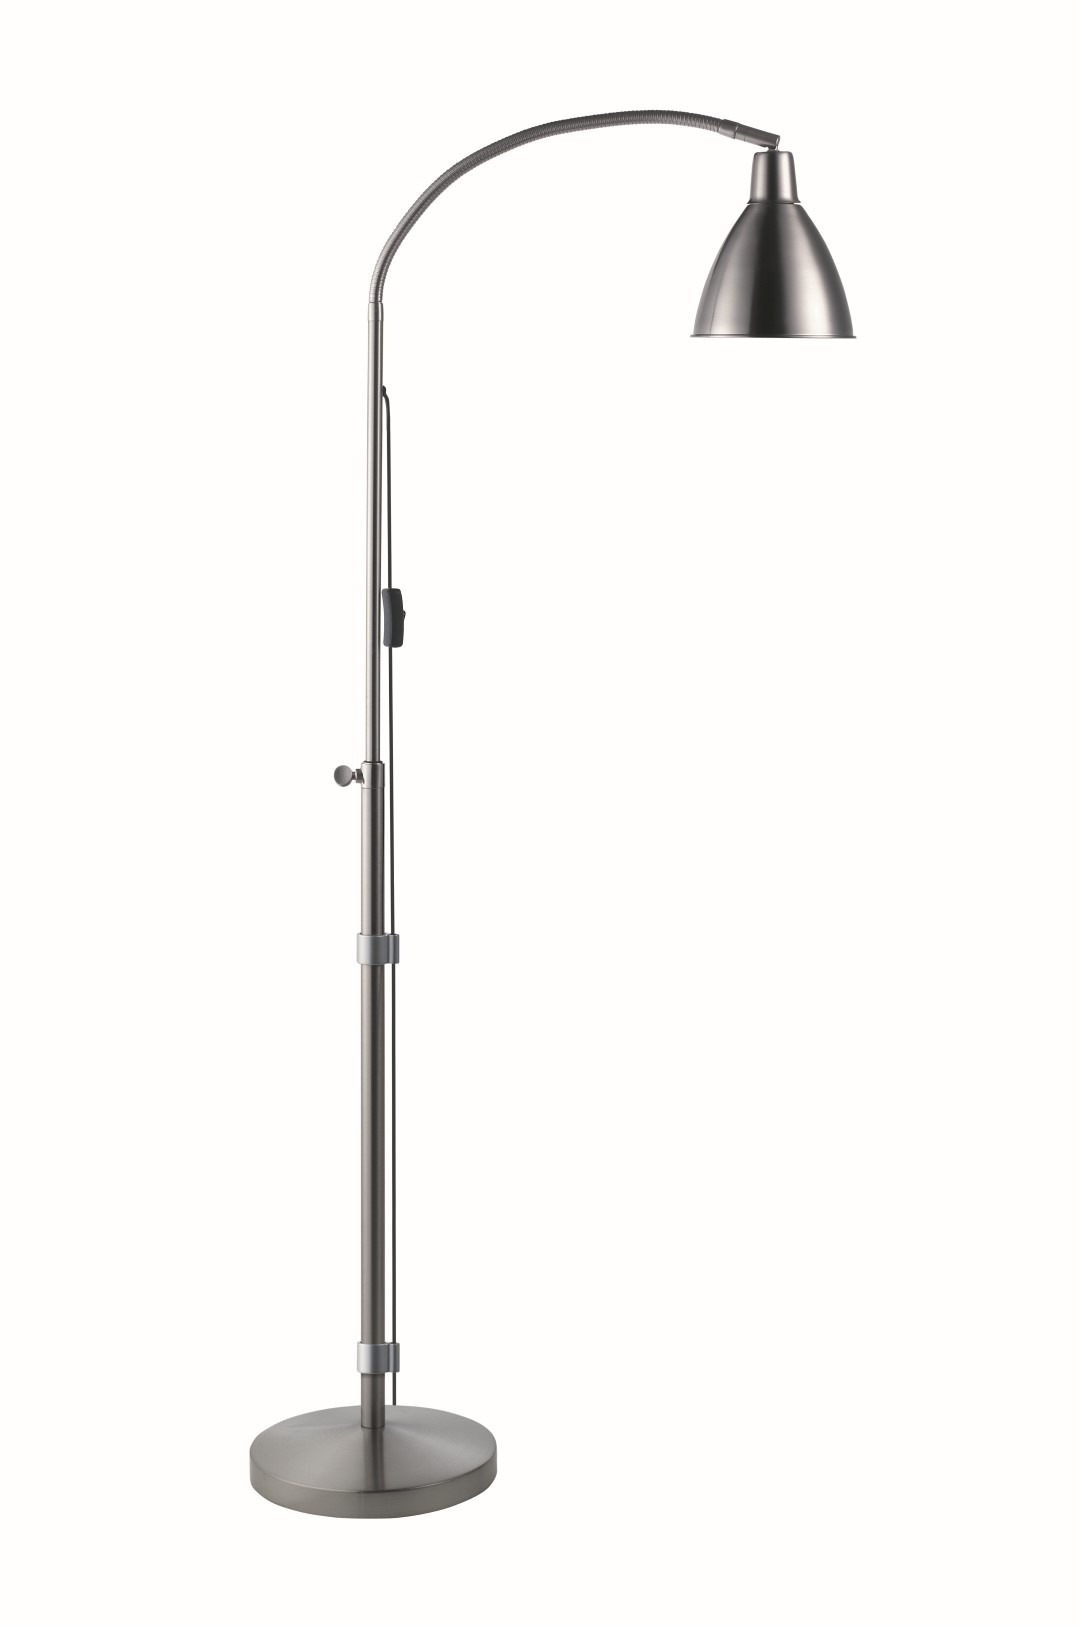 Daylight flexi vision floor lamp heamar company limited aloadofball Choice Image